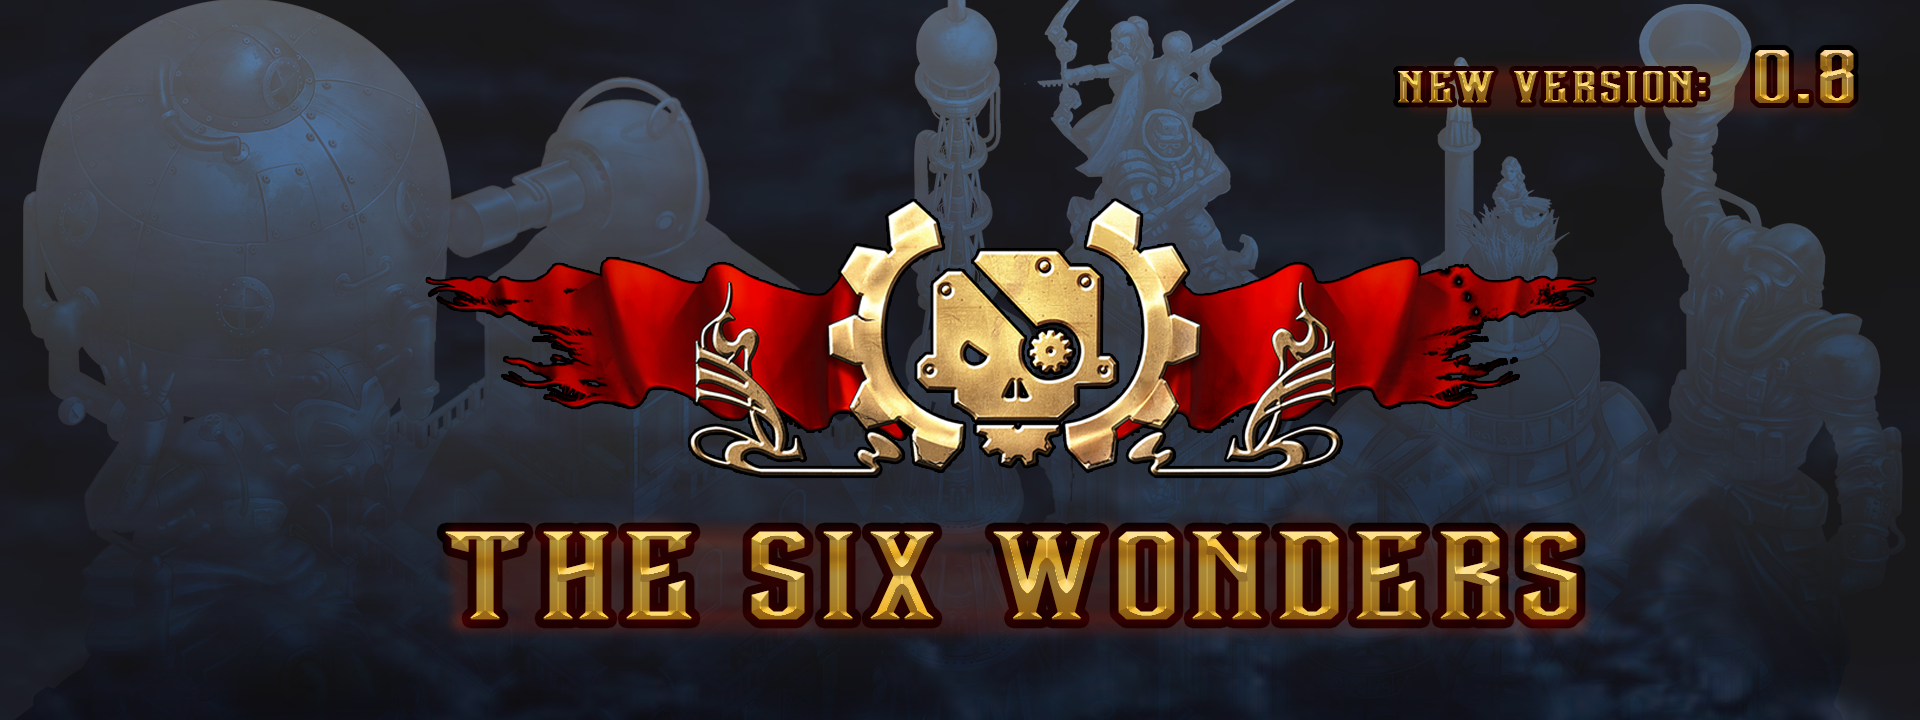 They Are Billions :: Big Update! The Six Wonders